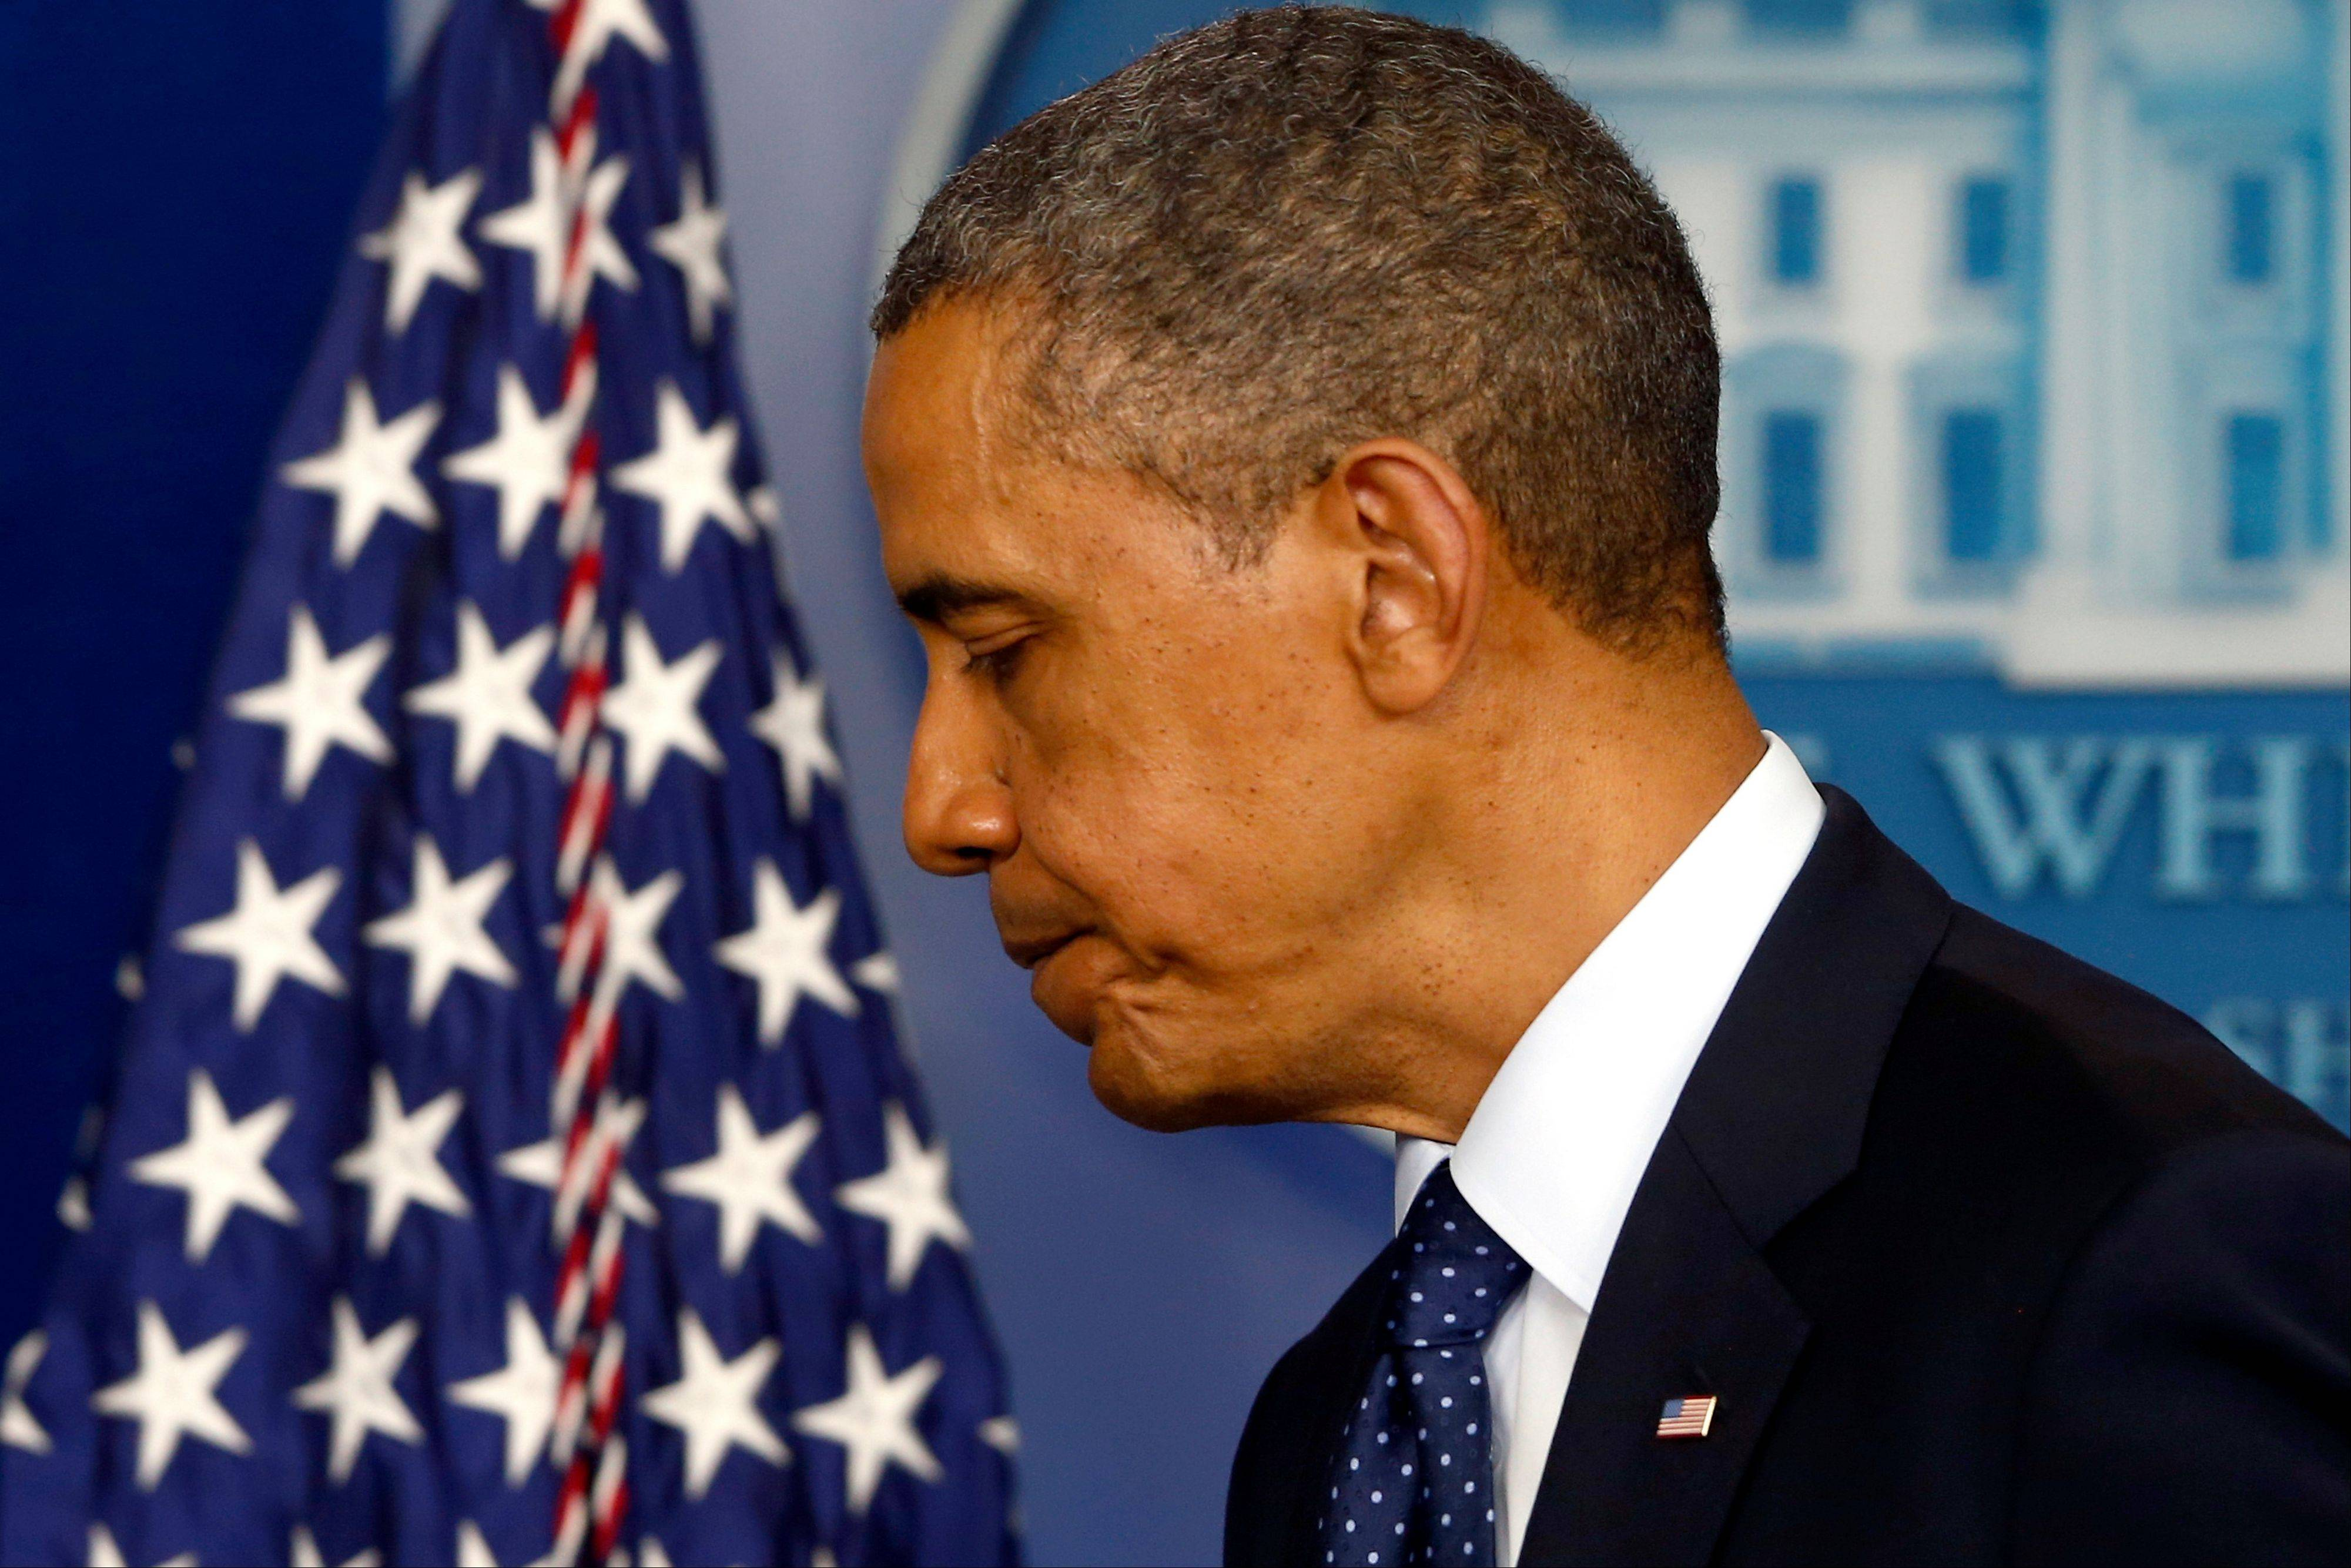 Obama: Those responsible for Boston explosion will feel justice